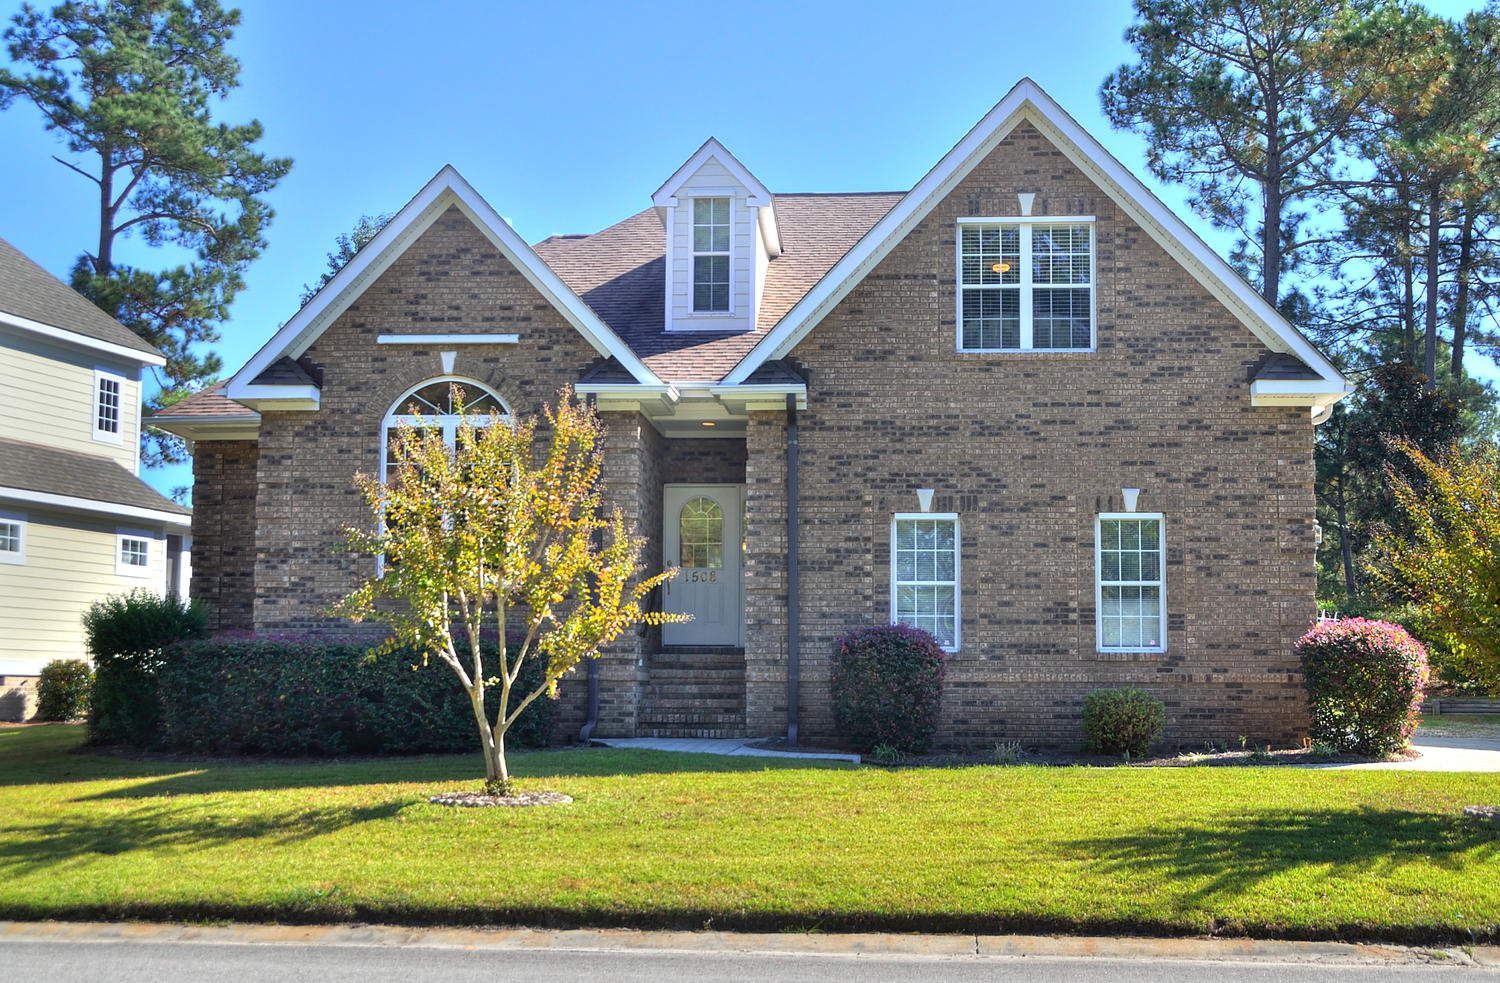 Single Family Home for Sale at Winding River 1508 Turnberry Lane SE Bolivia, North Carolina, 28422 United States